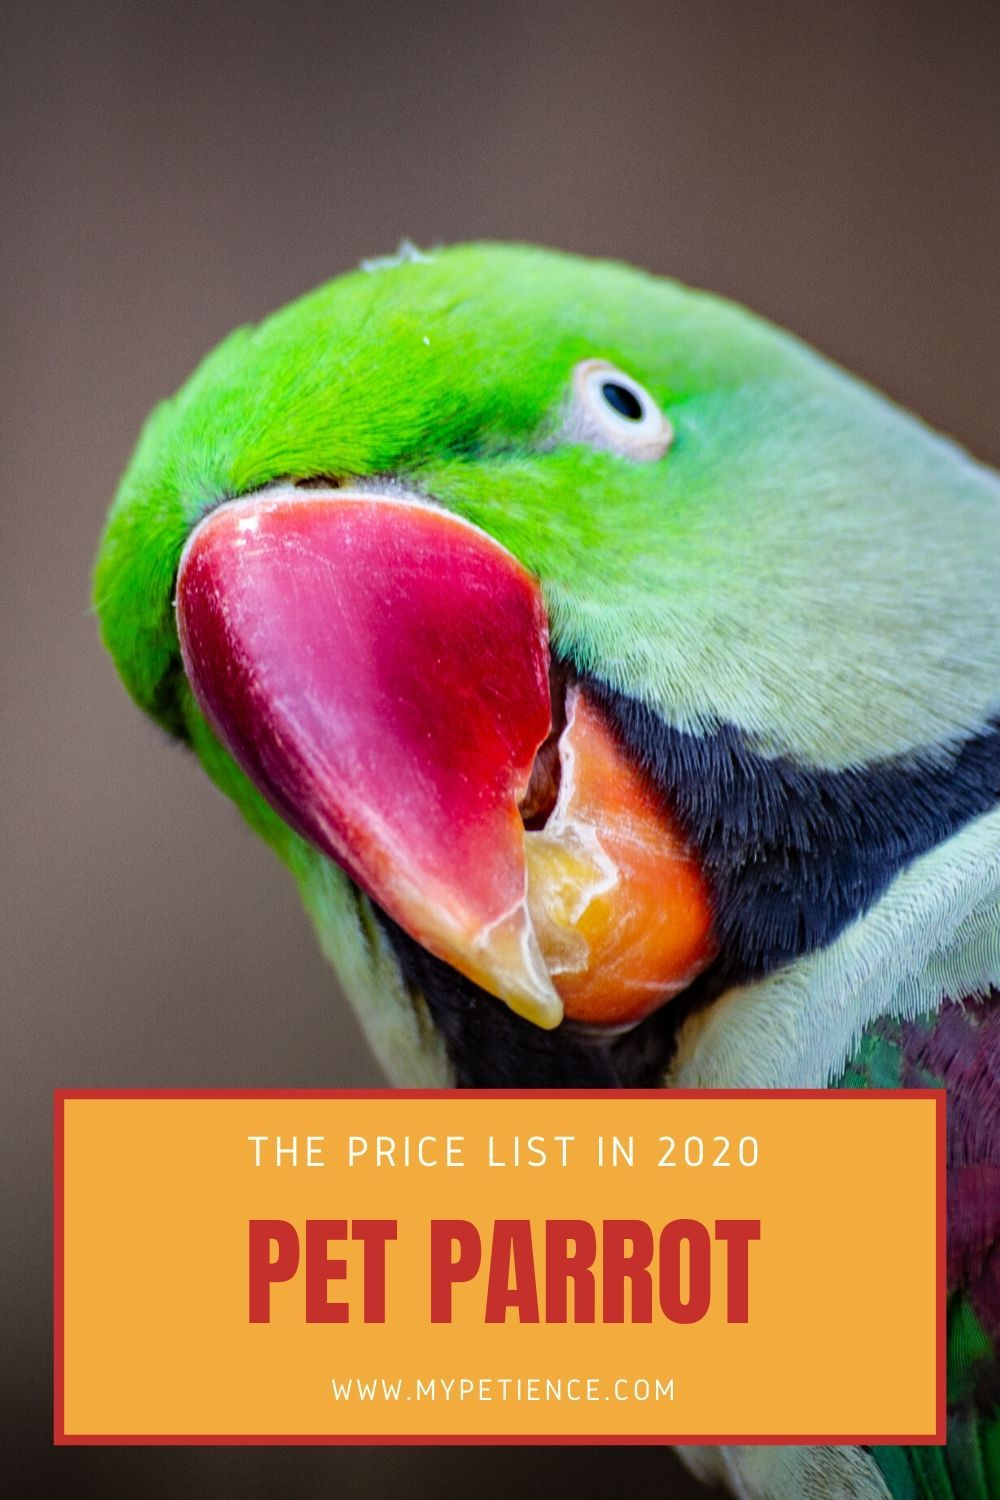 How Much Is a Parrot to Cost in 2020? in 2020 Parrot